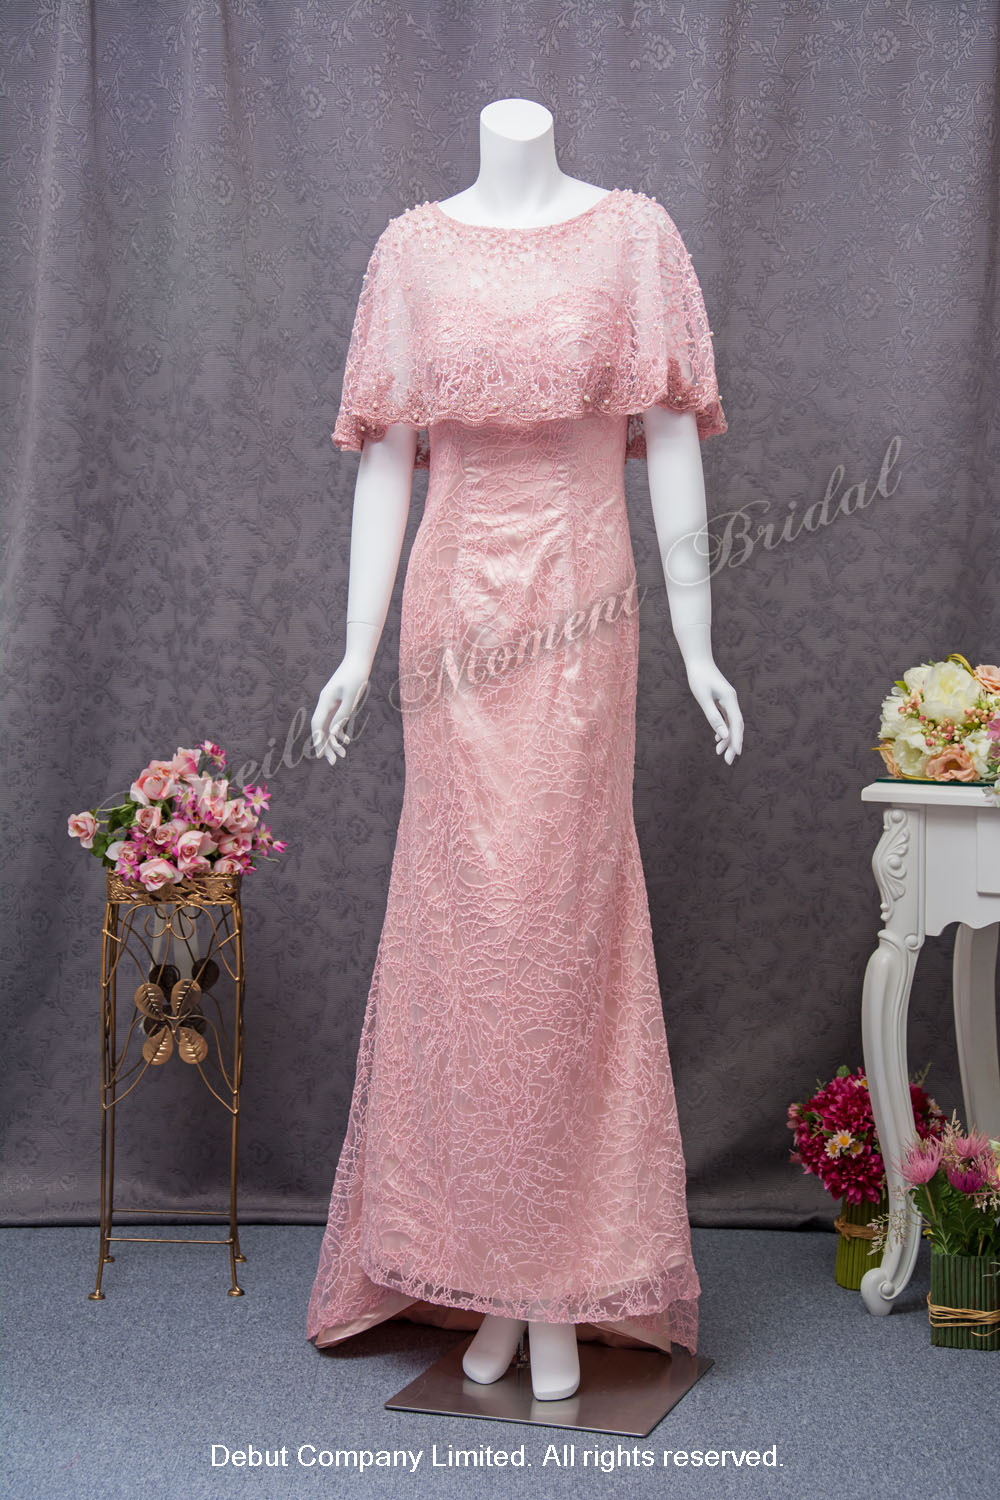 Sweetheart neckline, a lace overlay with decorative pearls, trumpet lace mother-of-bridal dress. Colour: Pink. 心形胸領口, 蕾絲仿珍珠閃石披肩, 喇叭款粉紅色媽咪奶奶晩裝裙